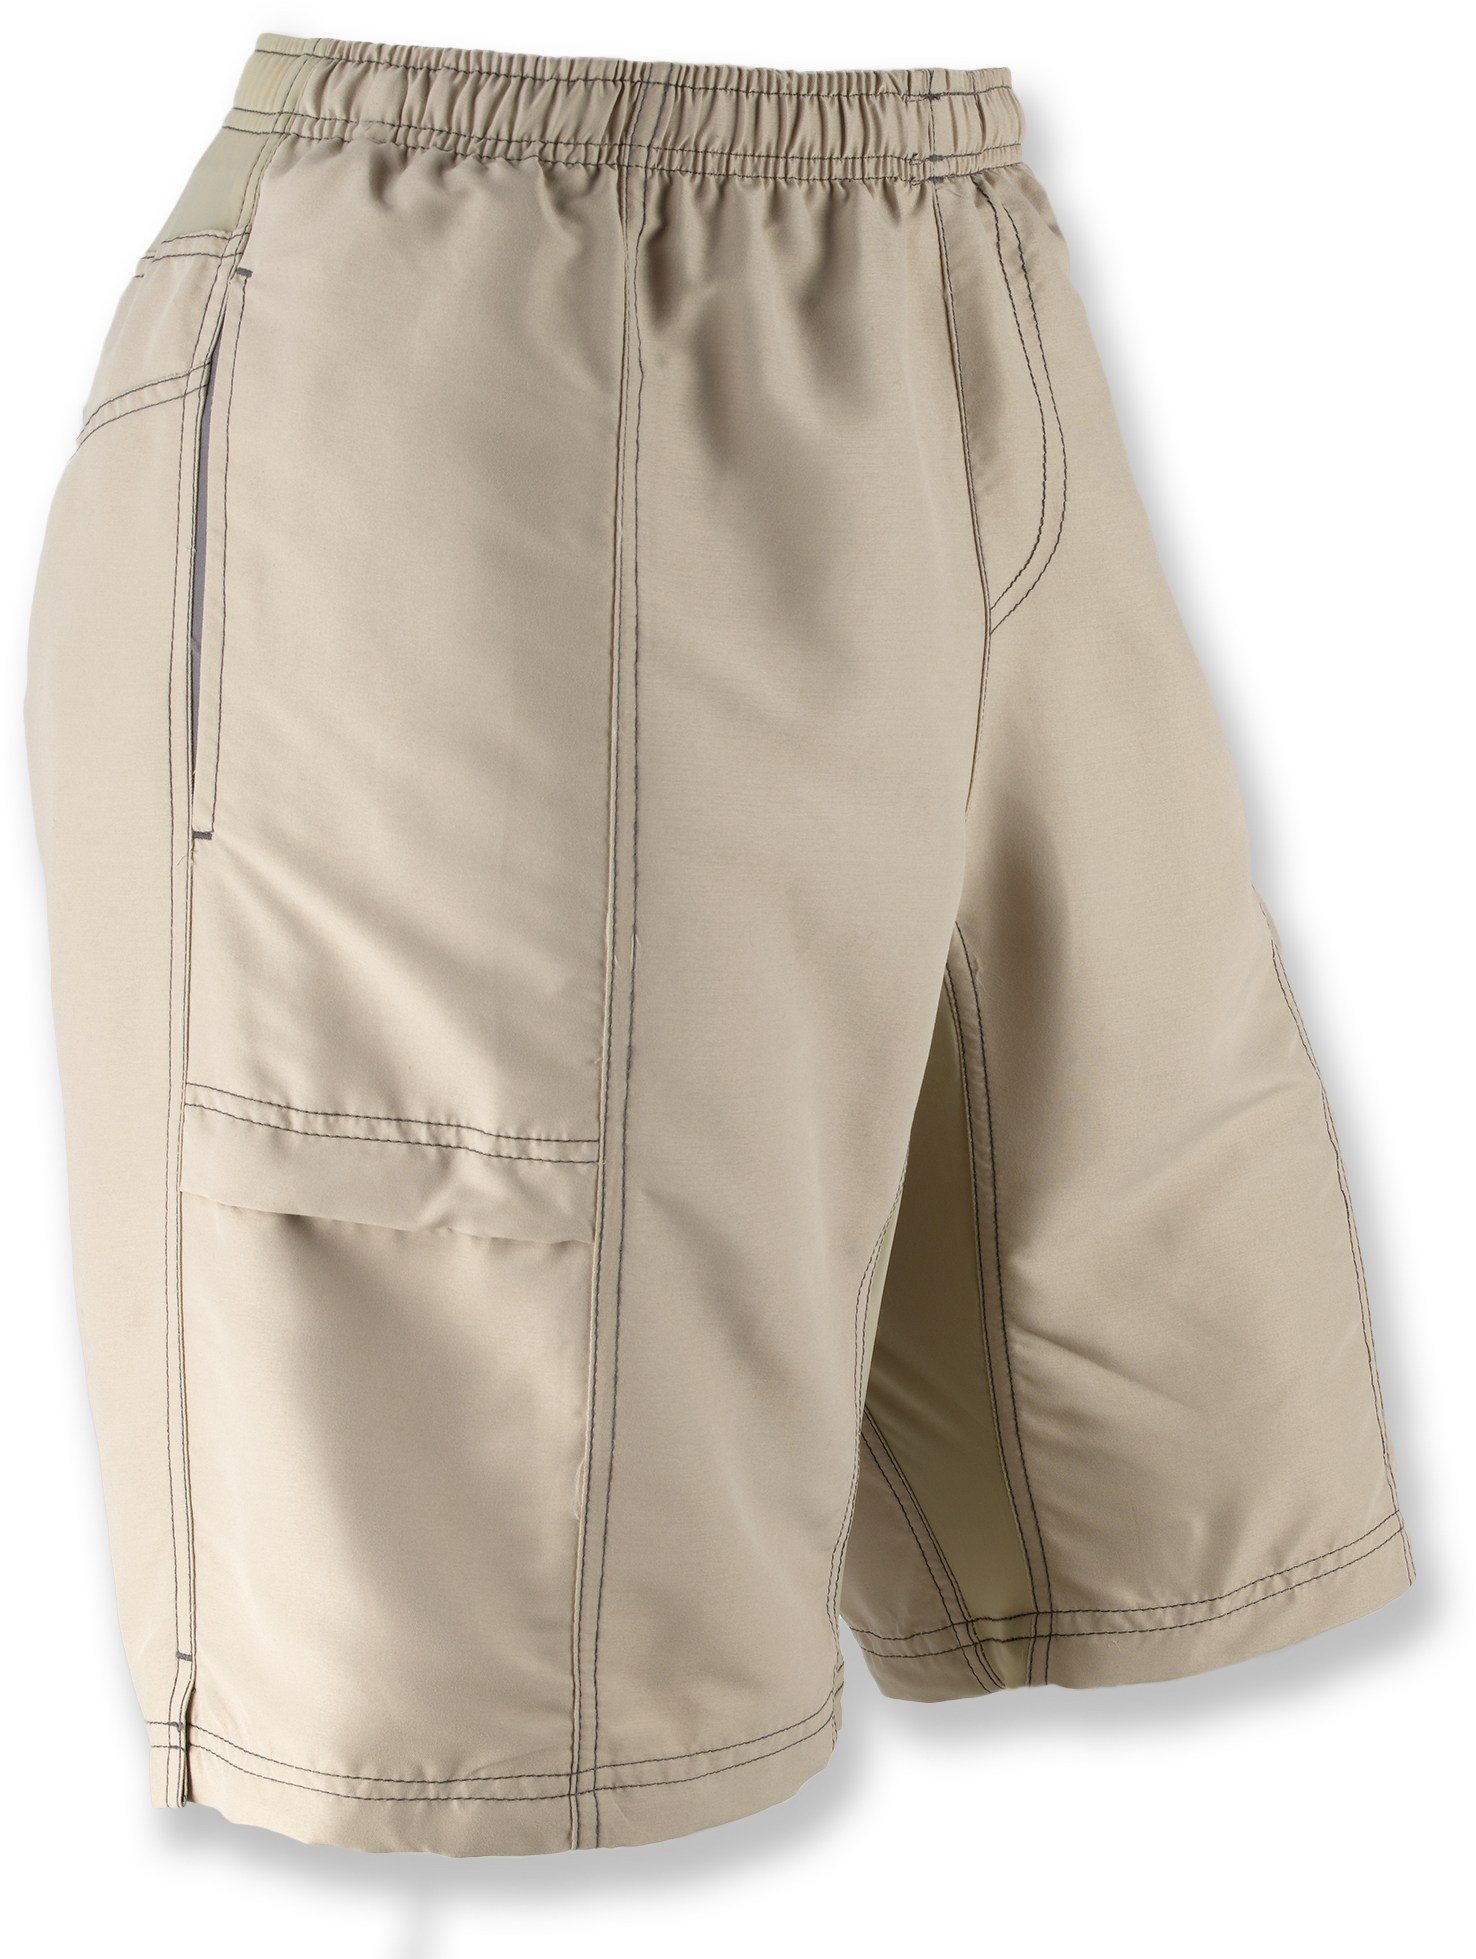 Canari Canyon Gel Baggy Bike Shorts